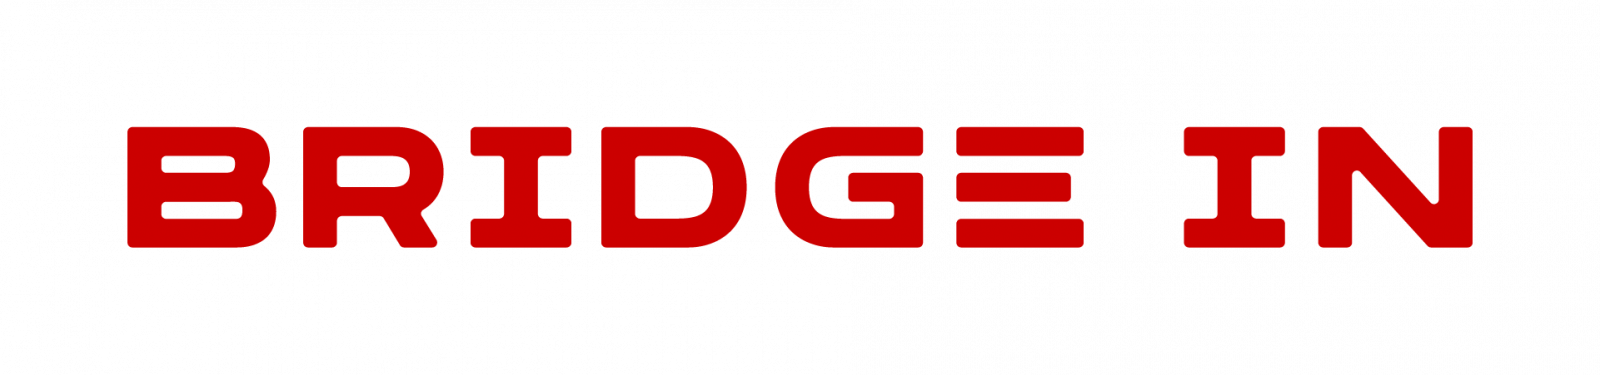 BRIDGE IN logo